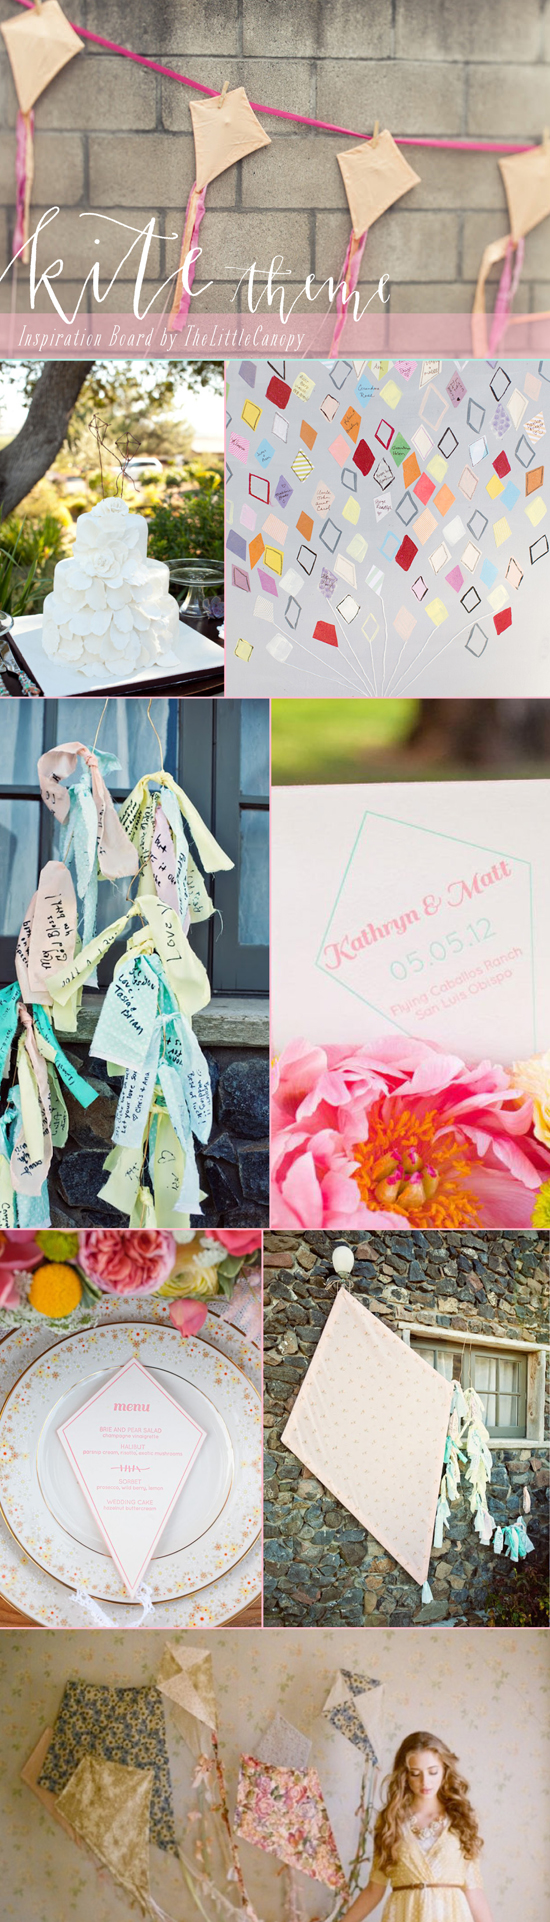 It hit me today out of nowhere. Flying... kites! So many great ways to play with this theme! I am in love with the fabric kites with long and rough edged tassels! Perfect for an outdoor Spring wedding/bridal shower! Enjoy!